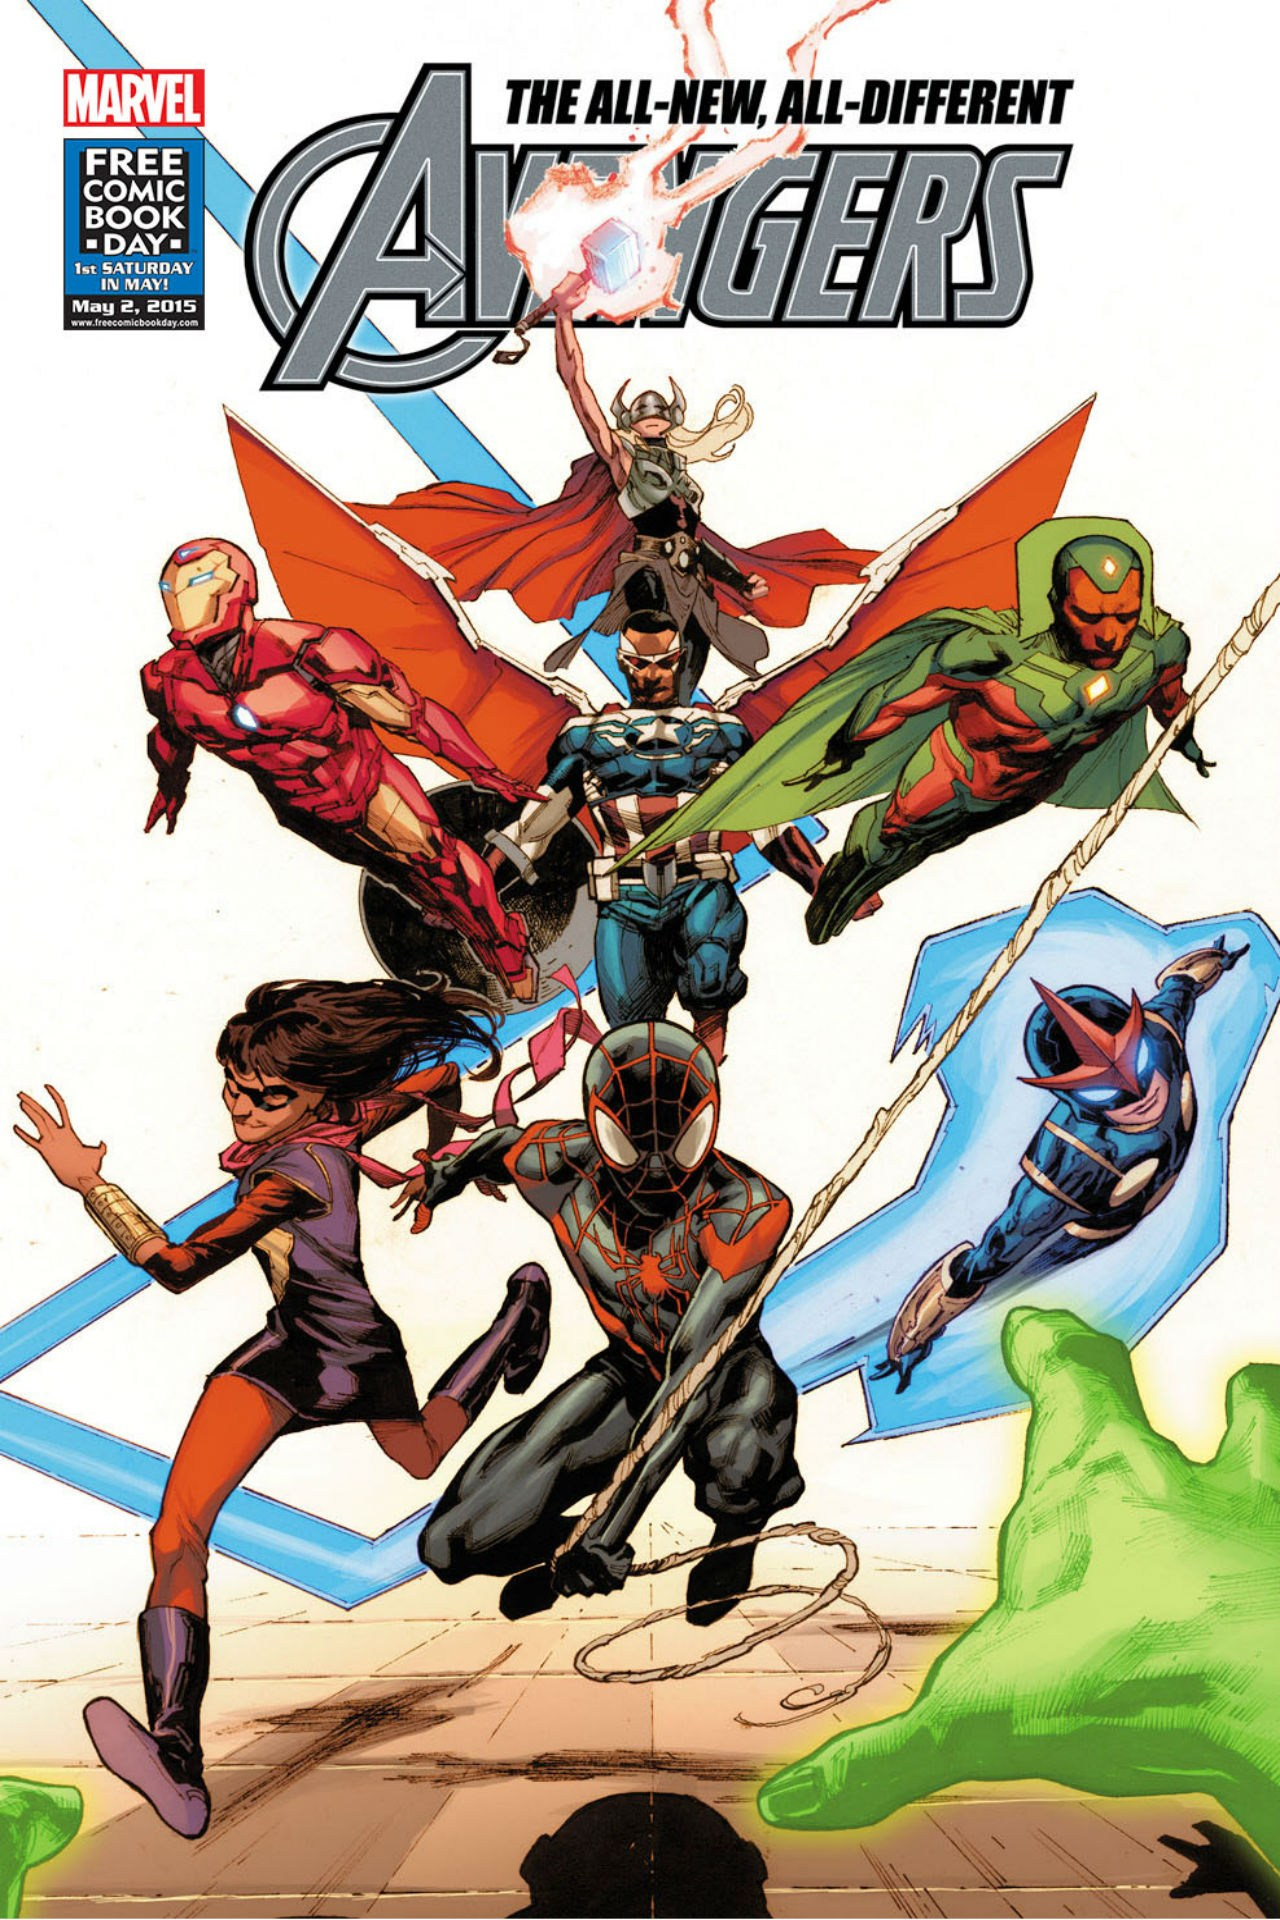 Miles Morales, Ms. Marvel and Thor join Marvel's All-New Avengers team